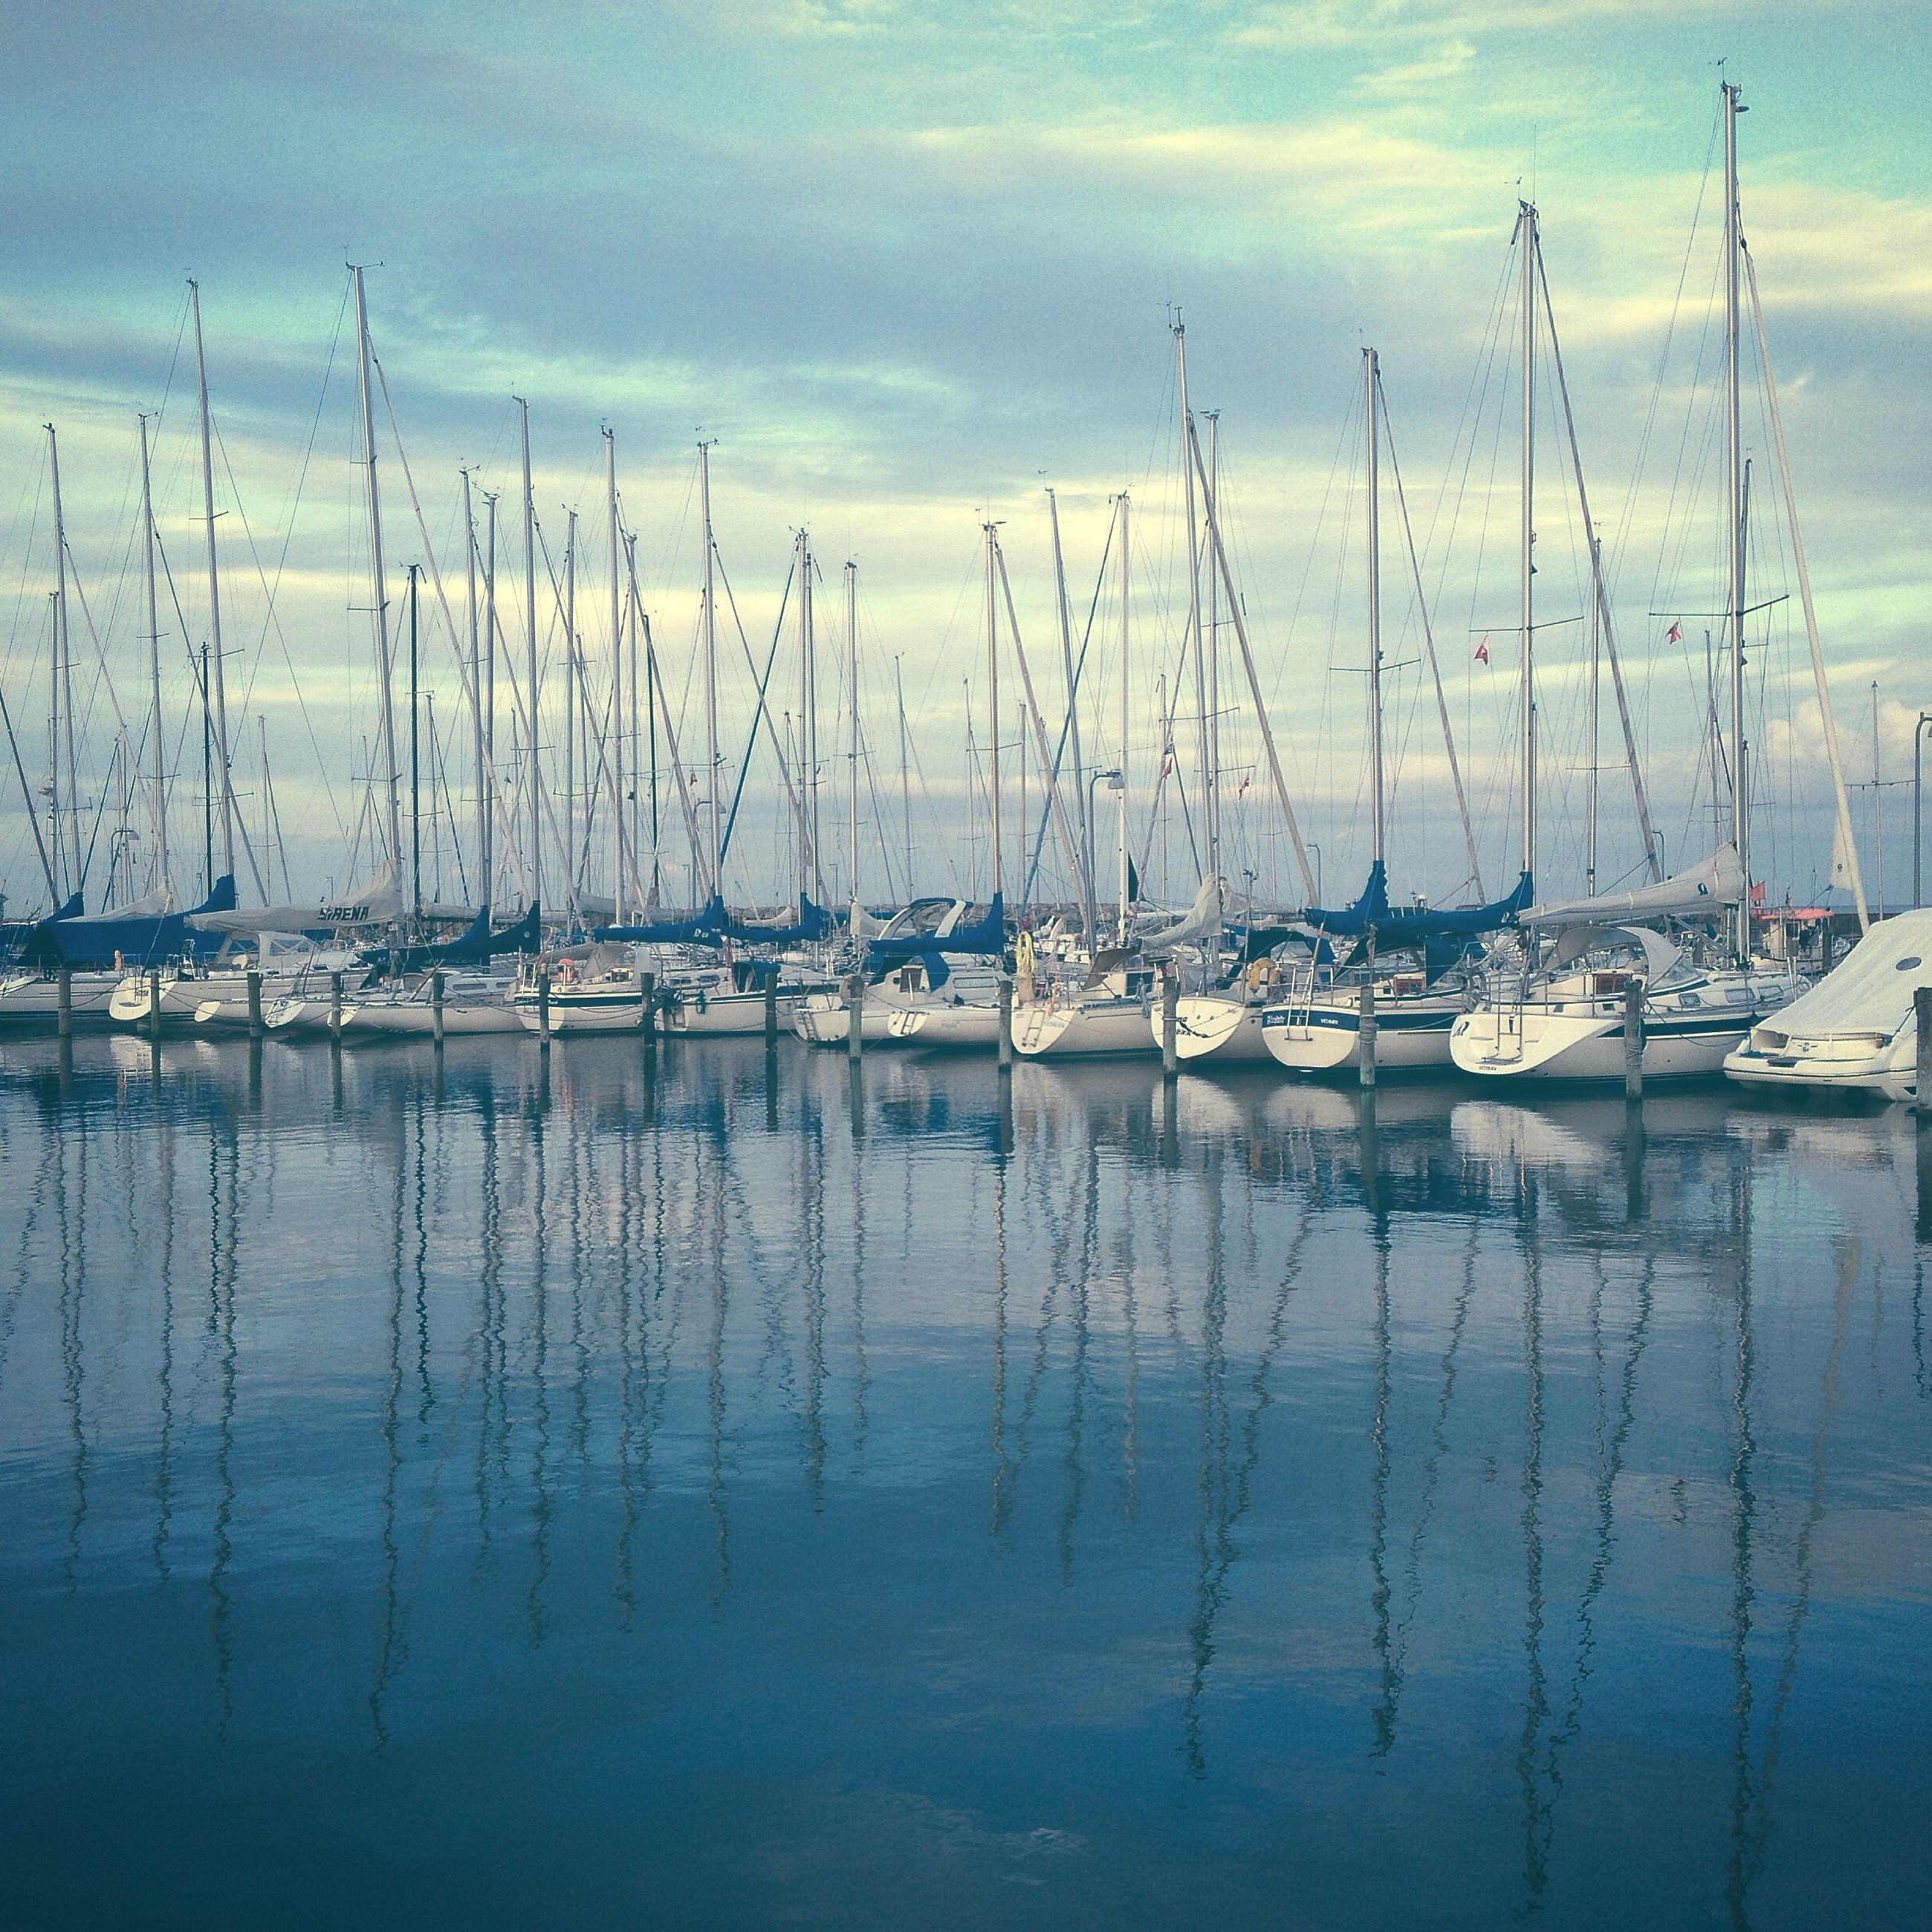 water, nautical vessel, reflection, sky, moored, boat, lake, tranquility, transportation, waterfront, tranquil scene, nature, cloud - sky, mast, cloud, sailboat, sea, scenics, mode of transport, beauty in nature